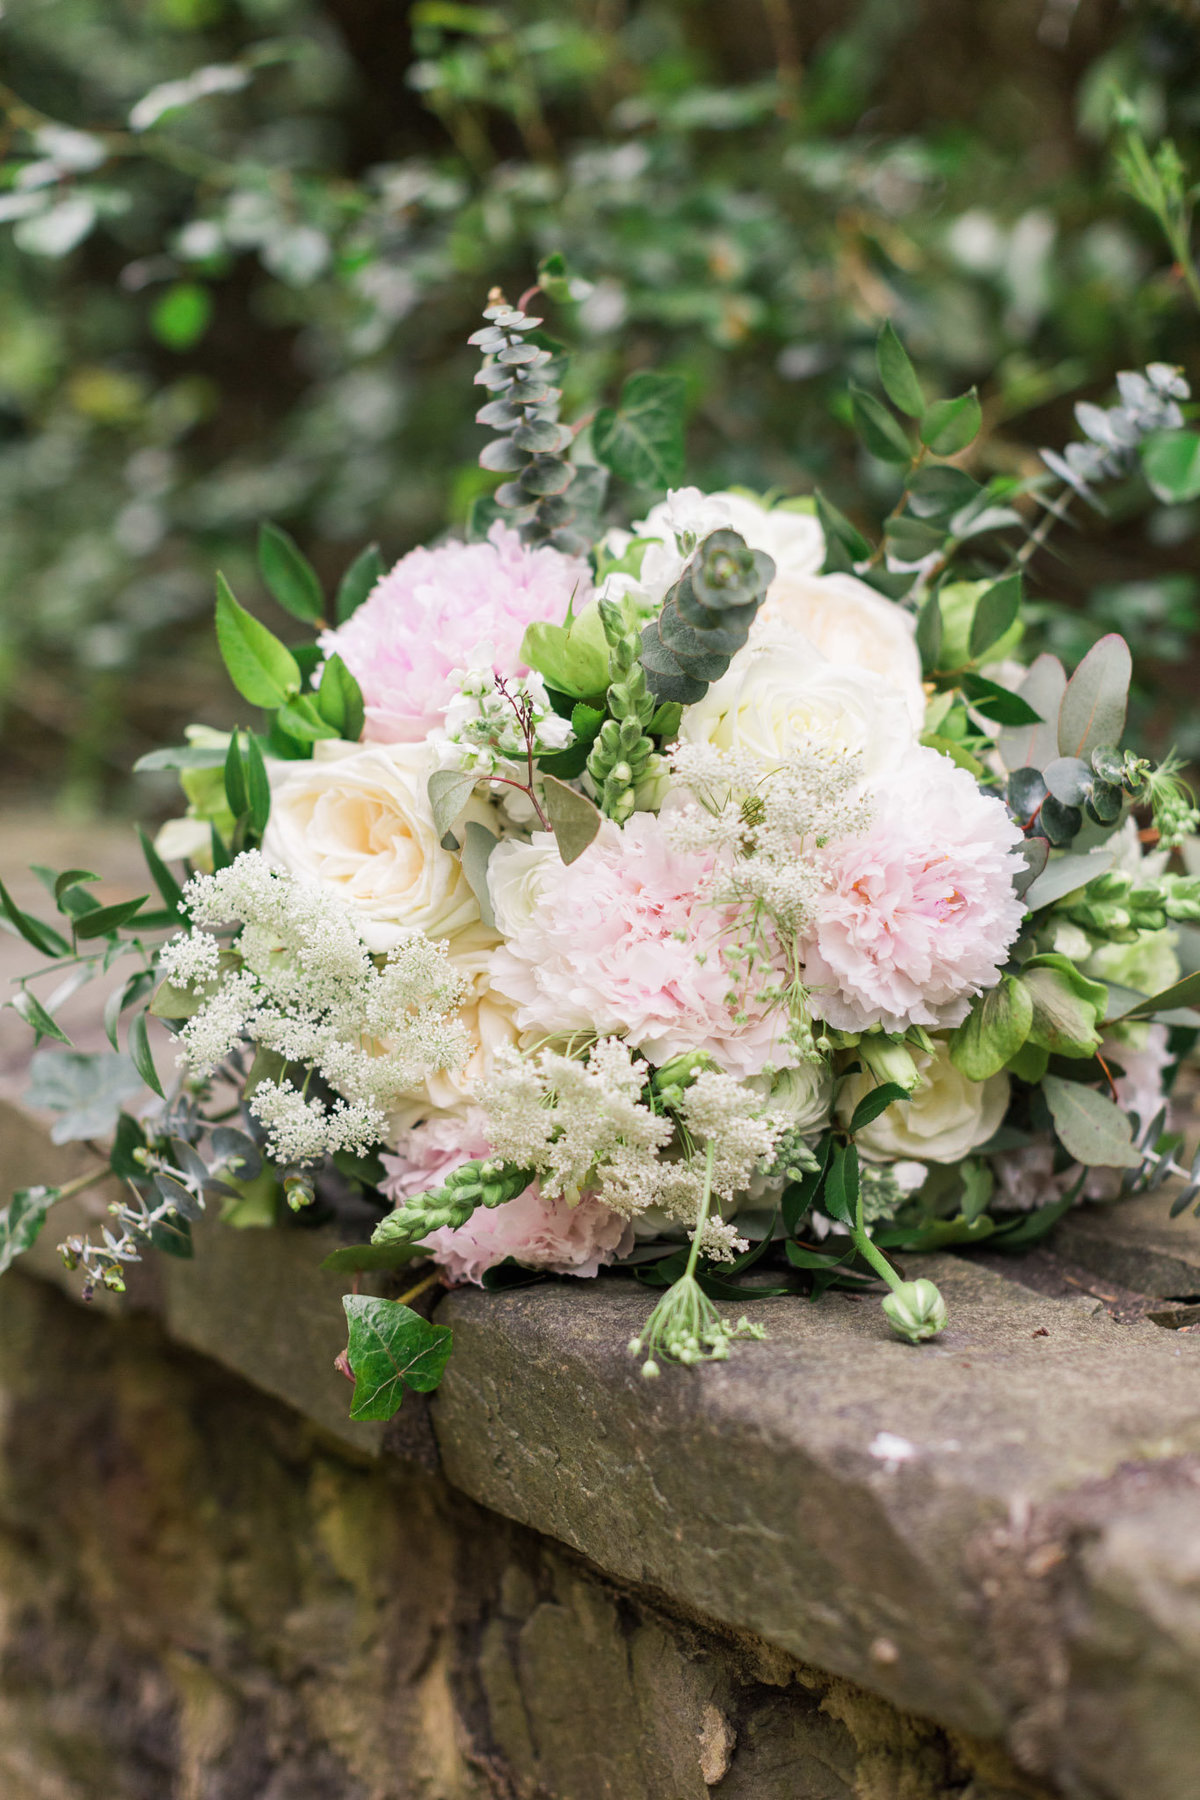 This bridal bouquet was made up of peonies and roses. Photo by luxury destination wedding photographer Rebecca Cerasani.